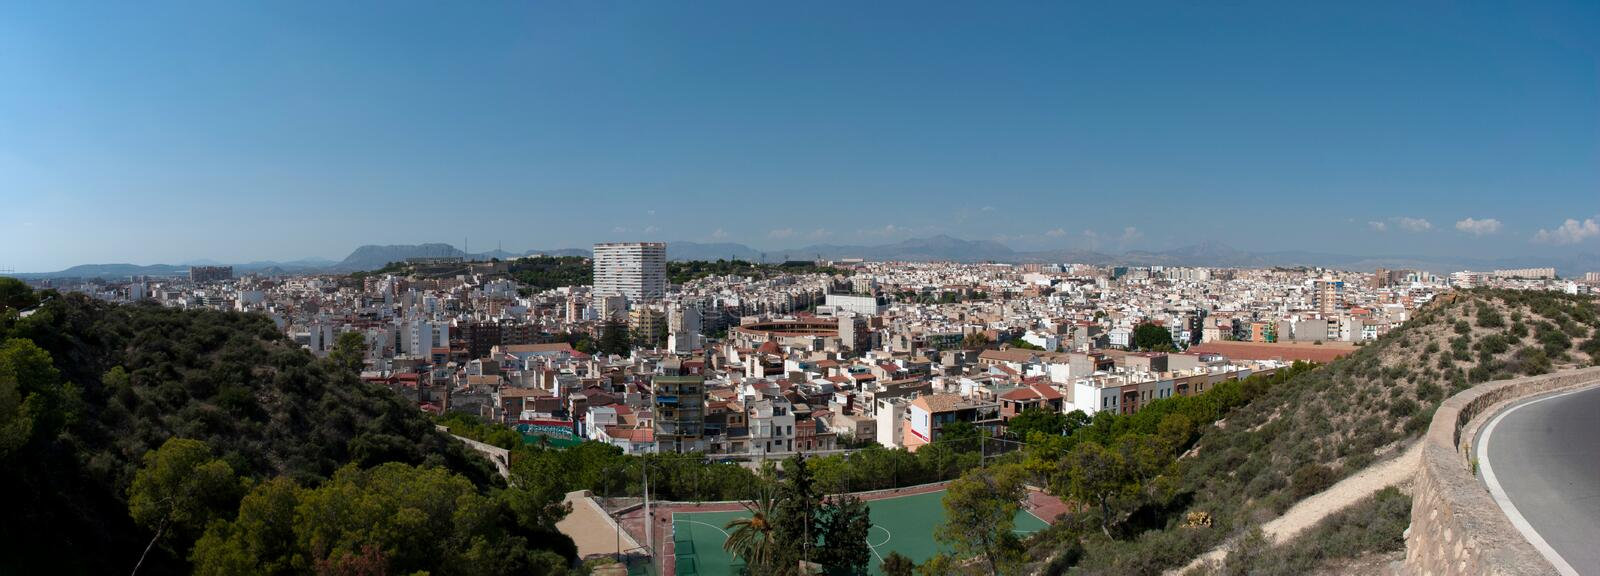 Panoramic view over Alicante, Spain stock image